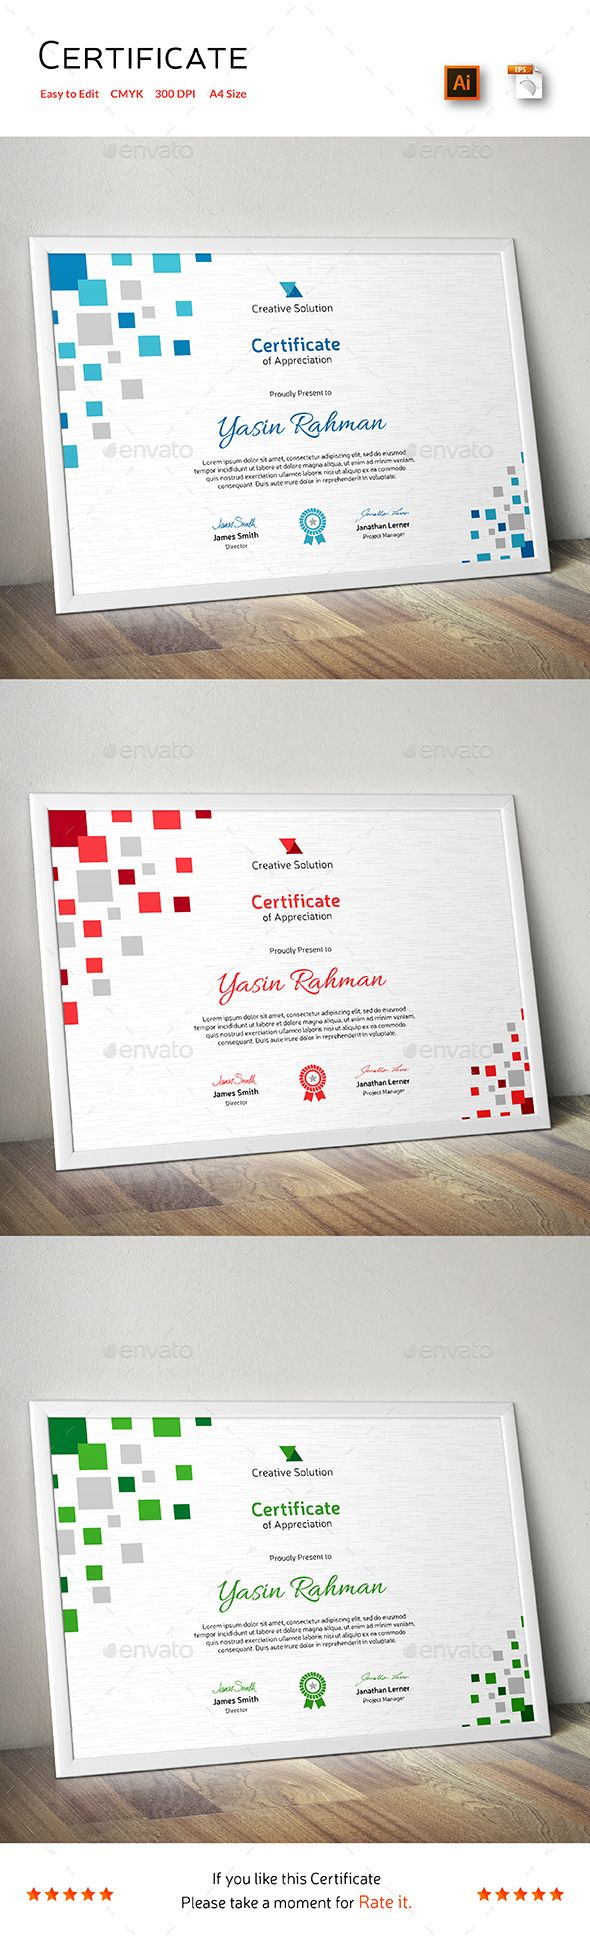 Certificate Template Vector EPS, AI. Download here: http://graphicriver.net/item/certificate/14200232?ref=ksioks